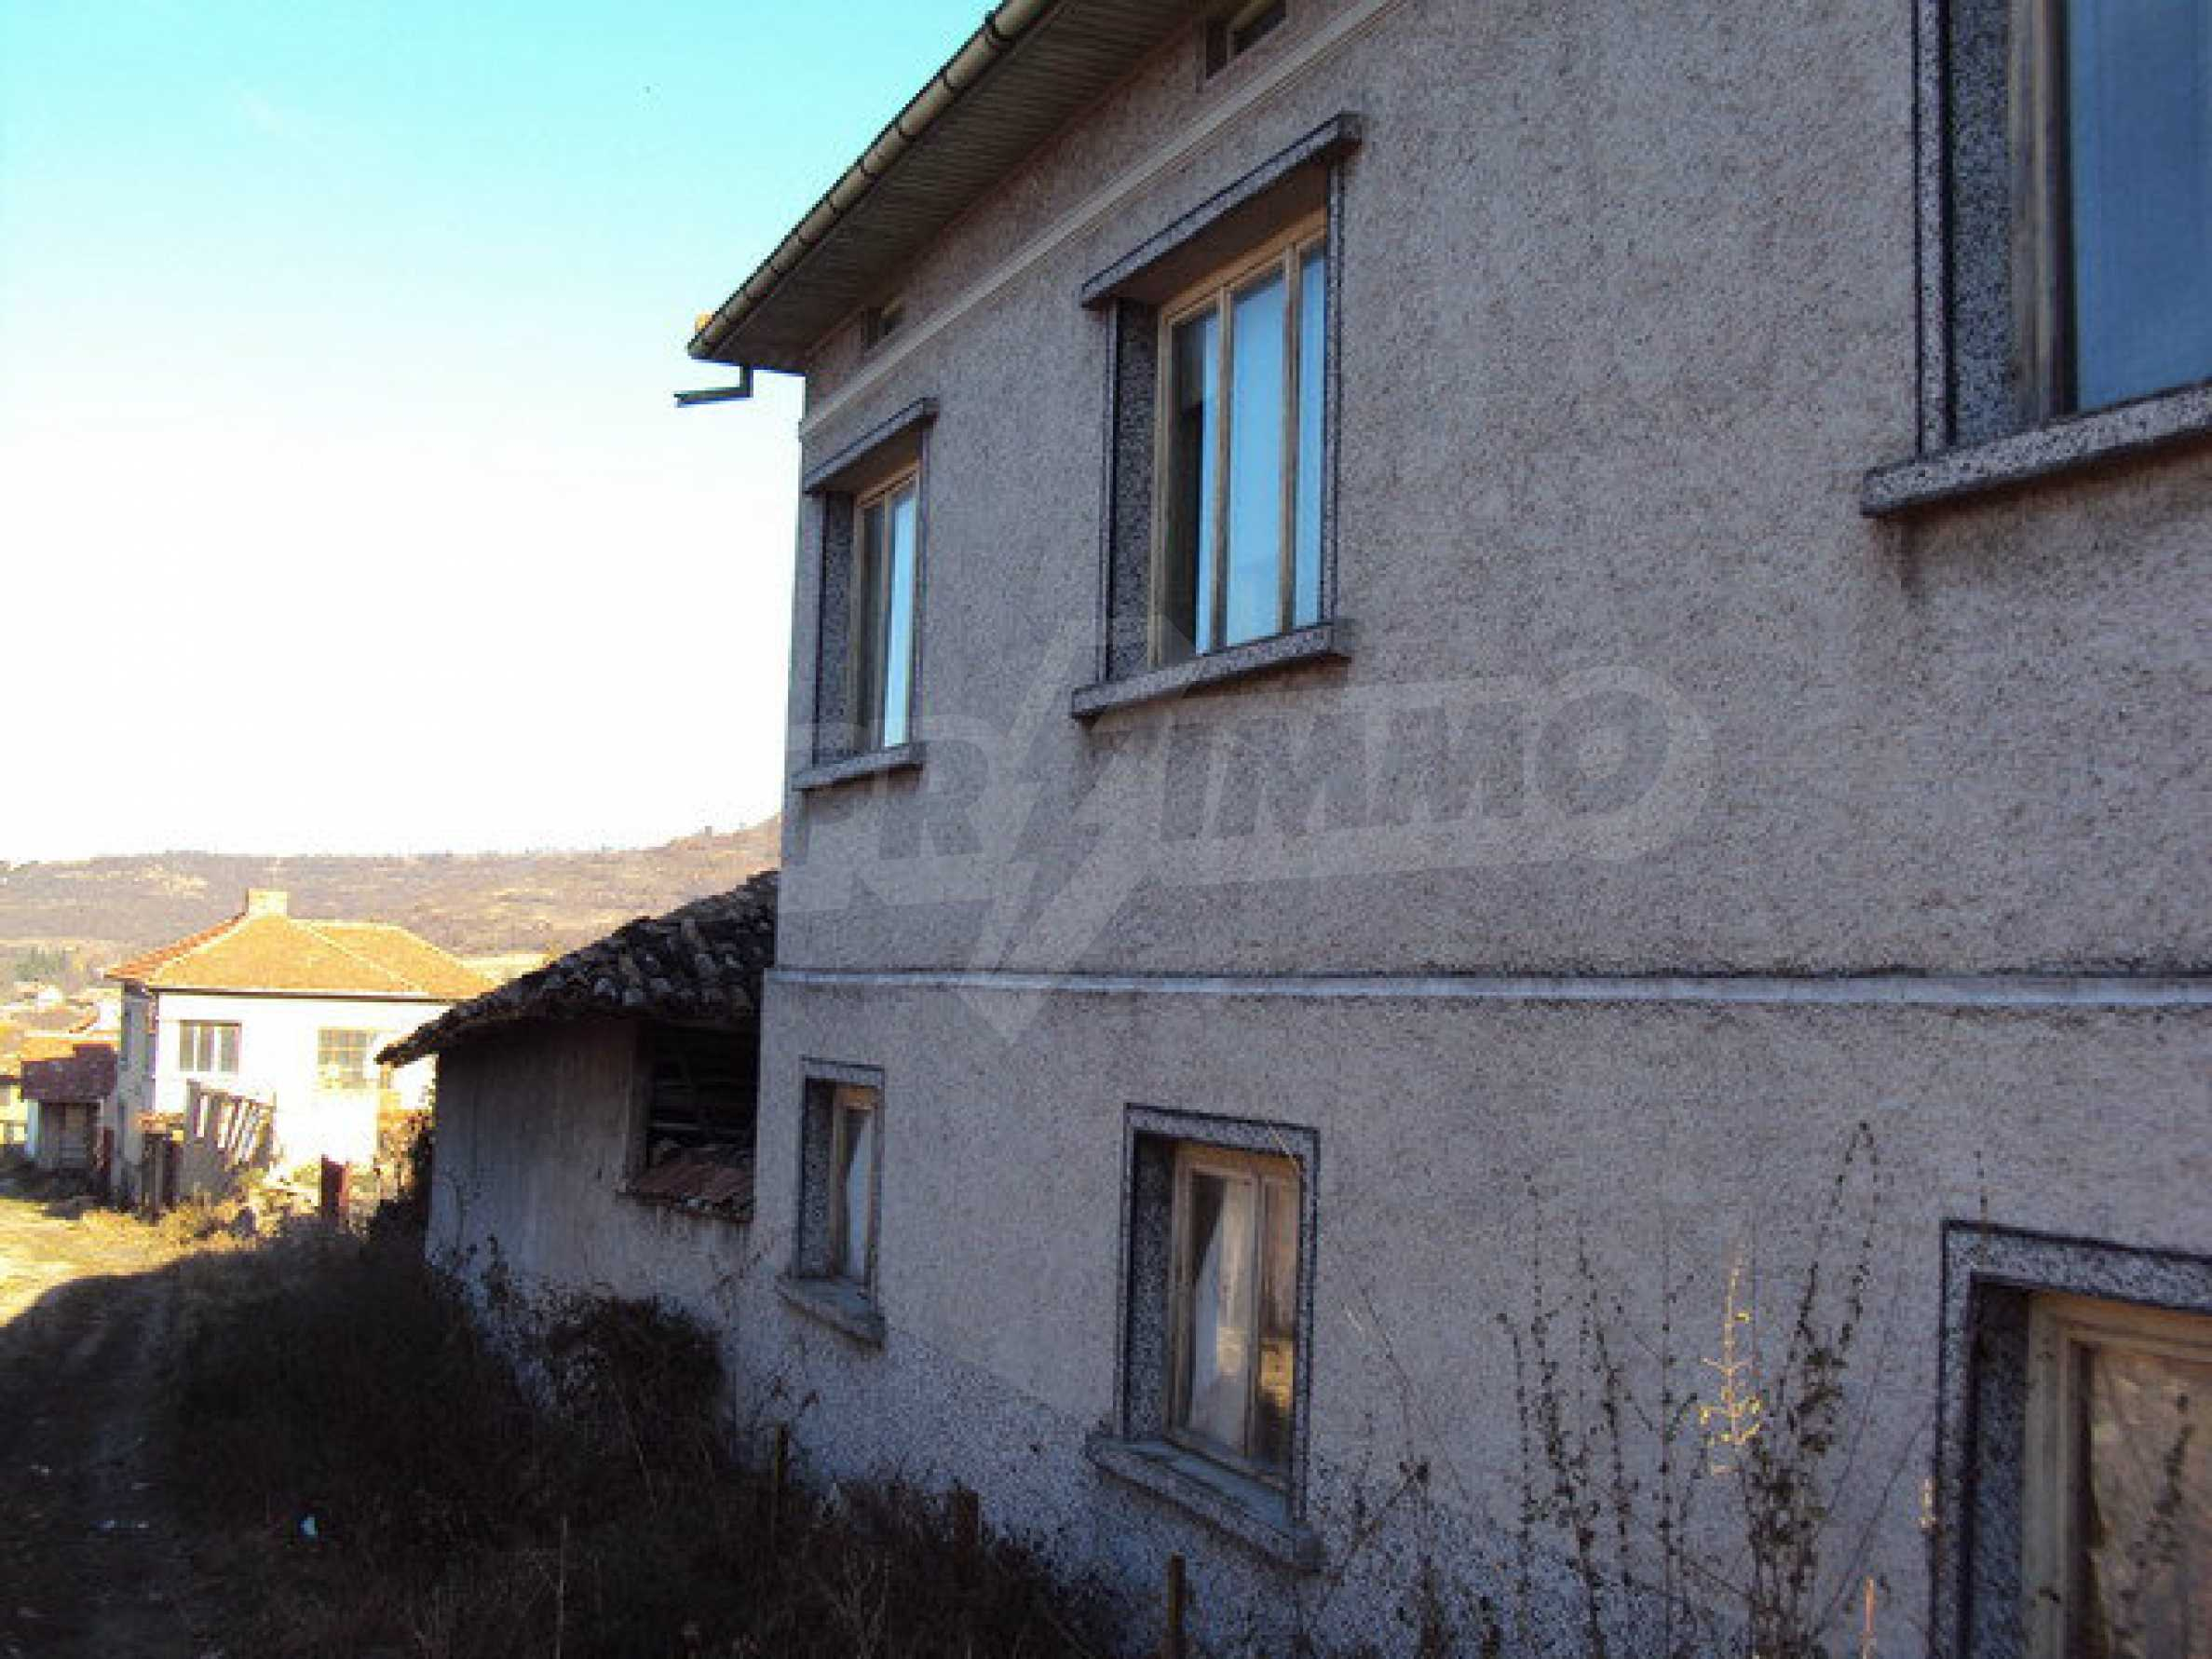 Spacious house in excellent condition in a village 25 km. the old capital of Veliko Tarnovo 34